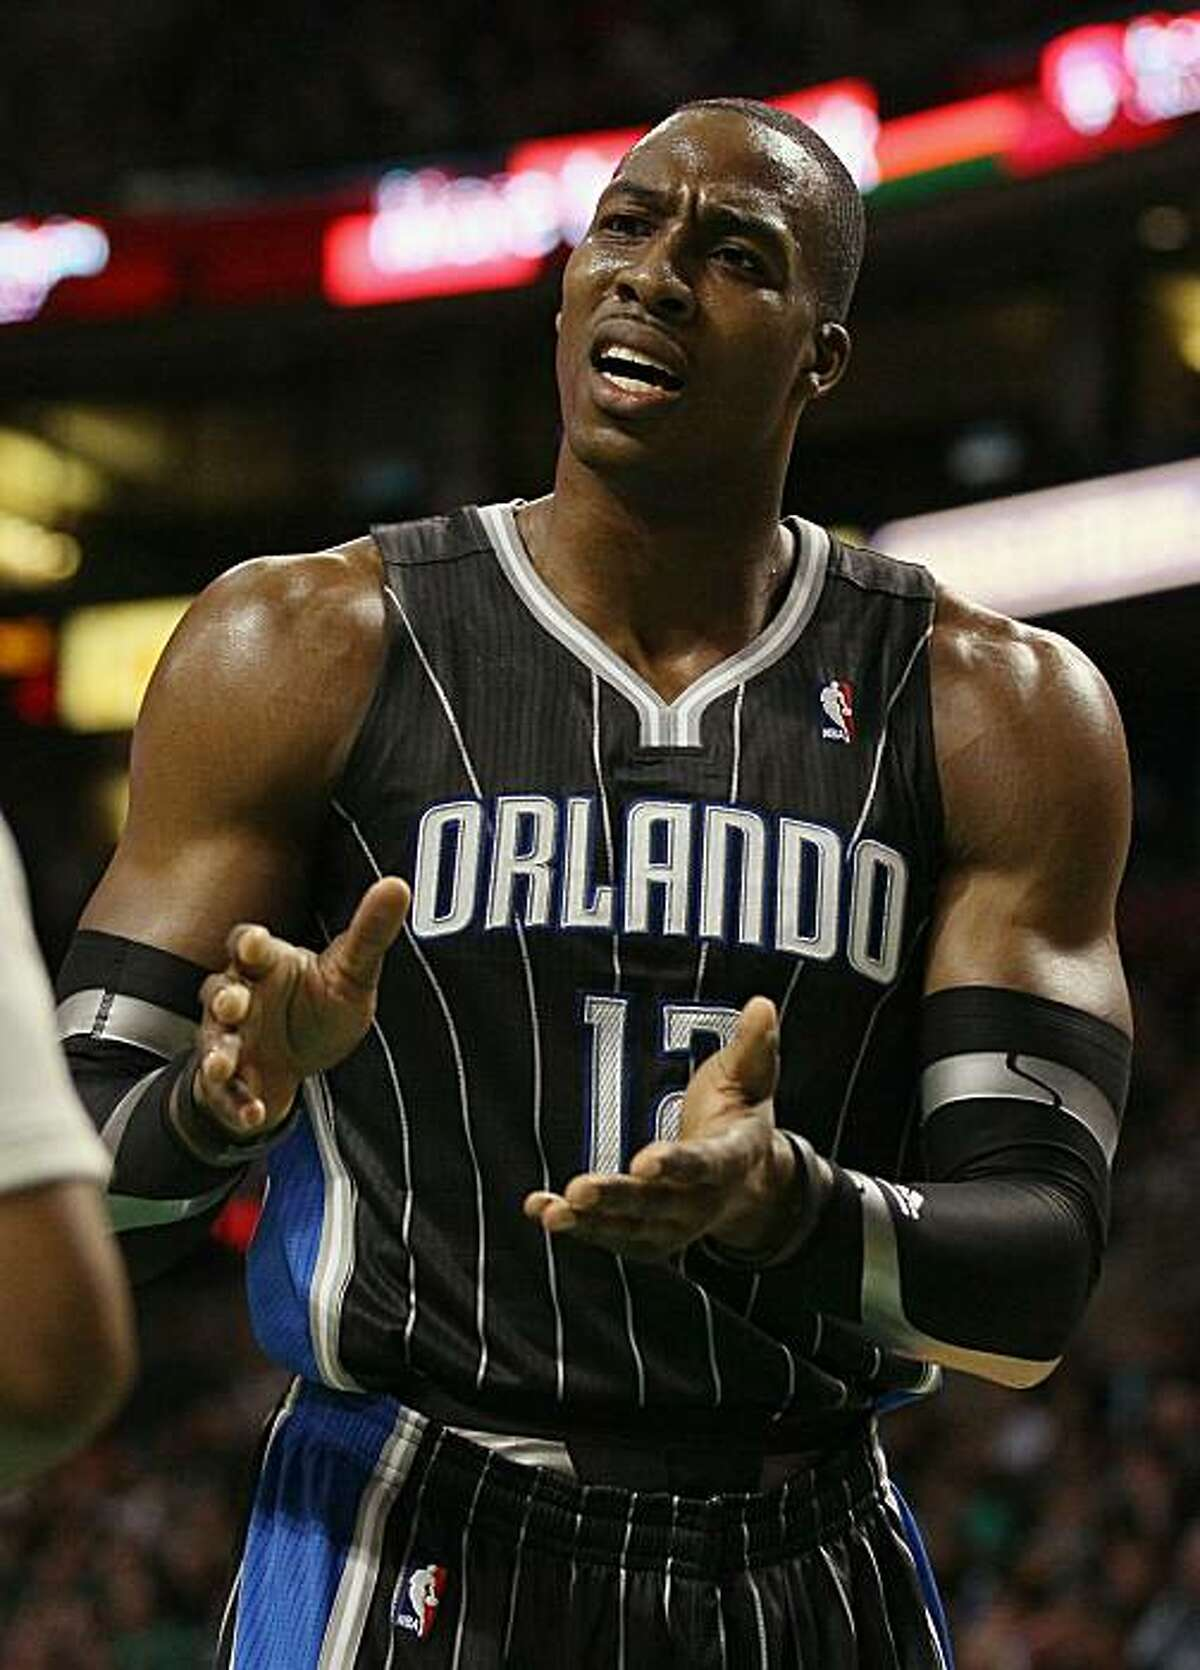 BOSTON, MA - JANUARY 17: Dwight Howard #12 of the Orlando Magic reacts to a call in the first quarter as they take on the Boston Celtics on January 17, 2011 at the TD Garden in Boston, Massachusetts. NOTE TO USER: User expressly acknowledges and agreesthat, by downloading and/or using this Photograph, User is consenting to the terms and conditions of the Getty Images License Agreement.